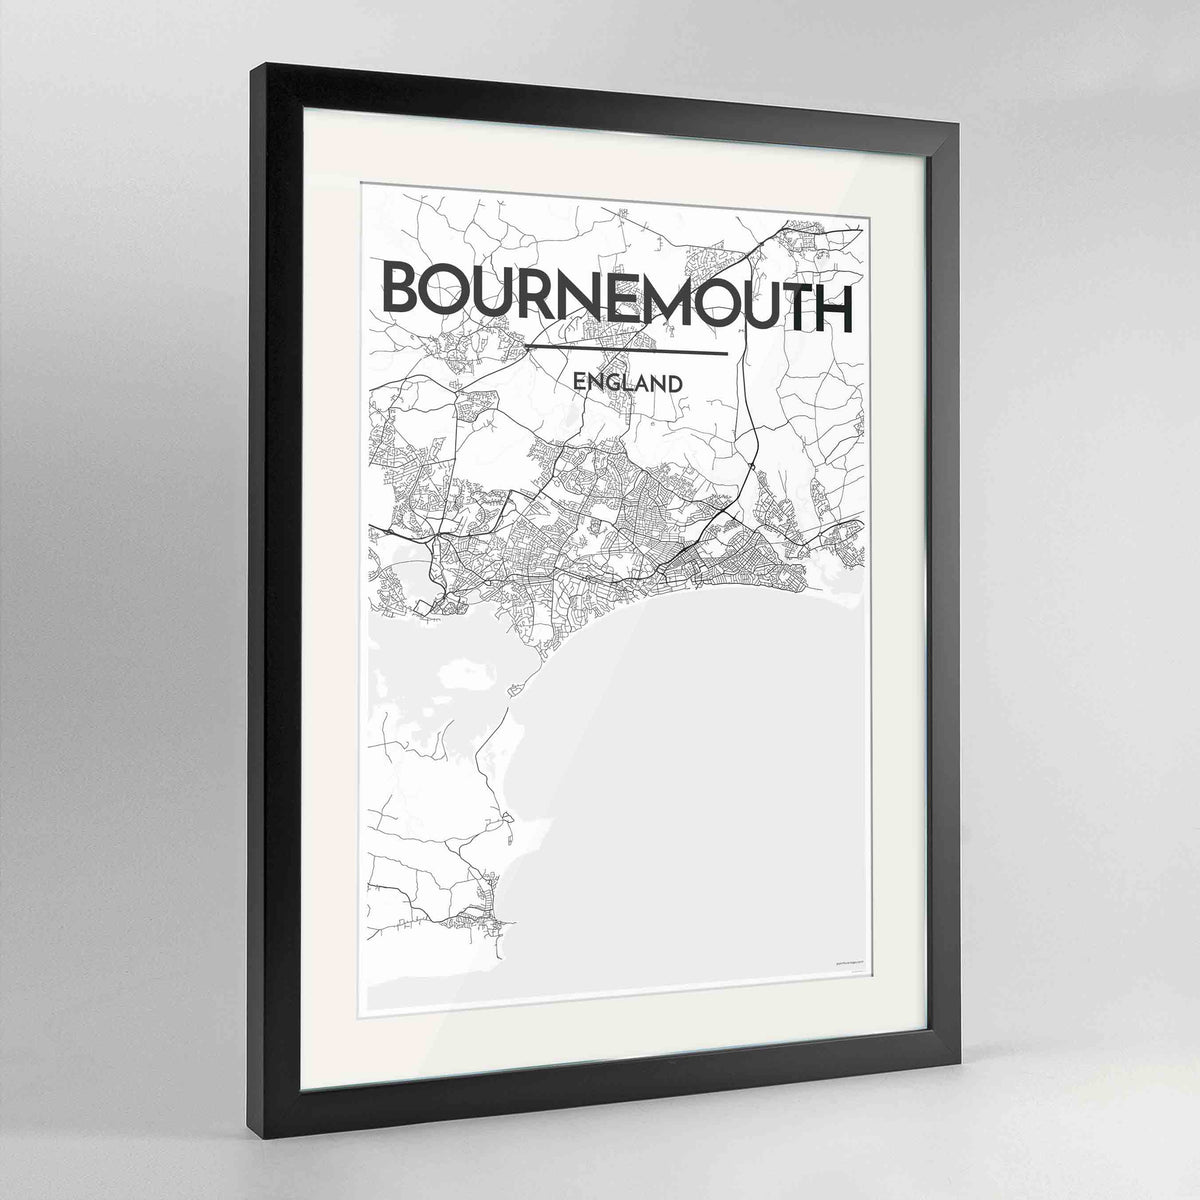 "Framed Bournemouth Map Art Print 24x36"" Contemporary Black frame Point Two Design Group"